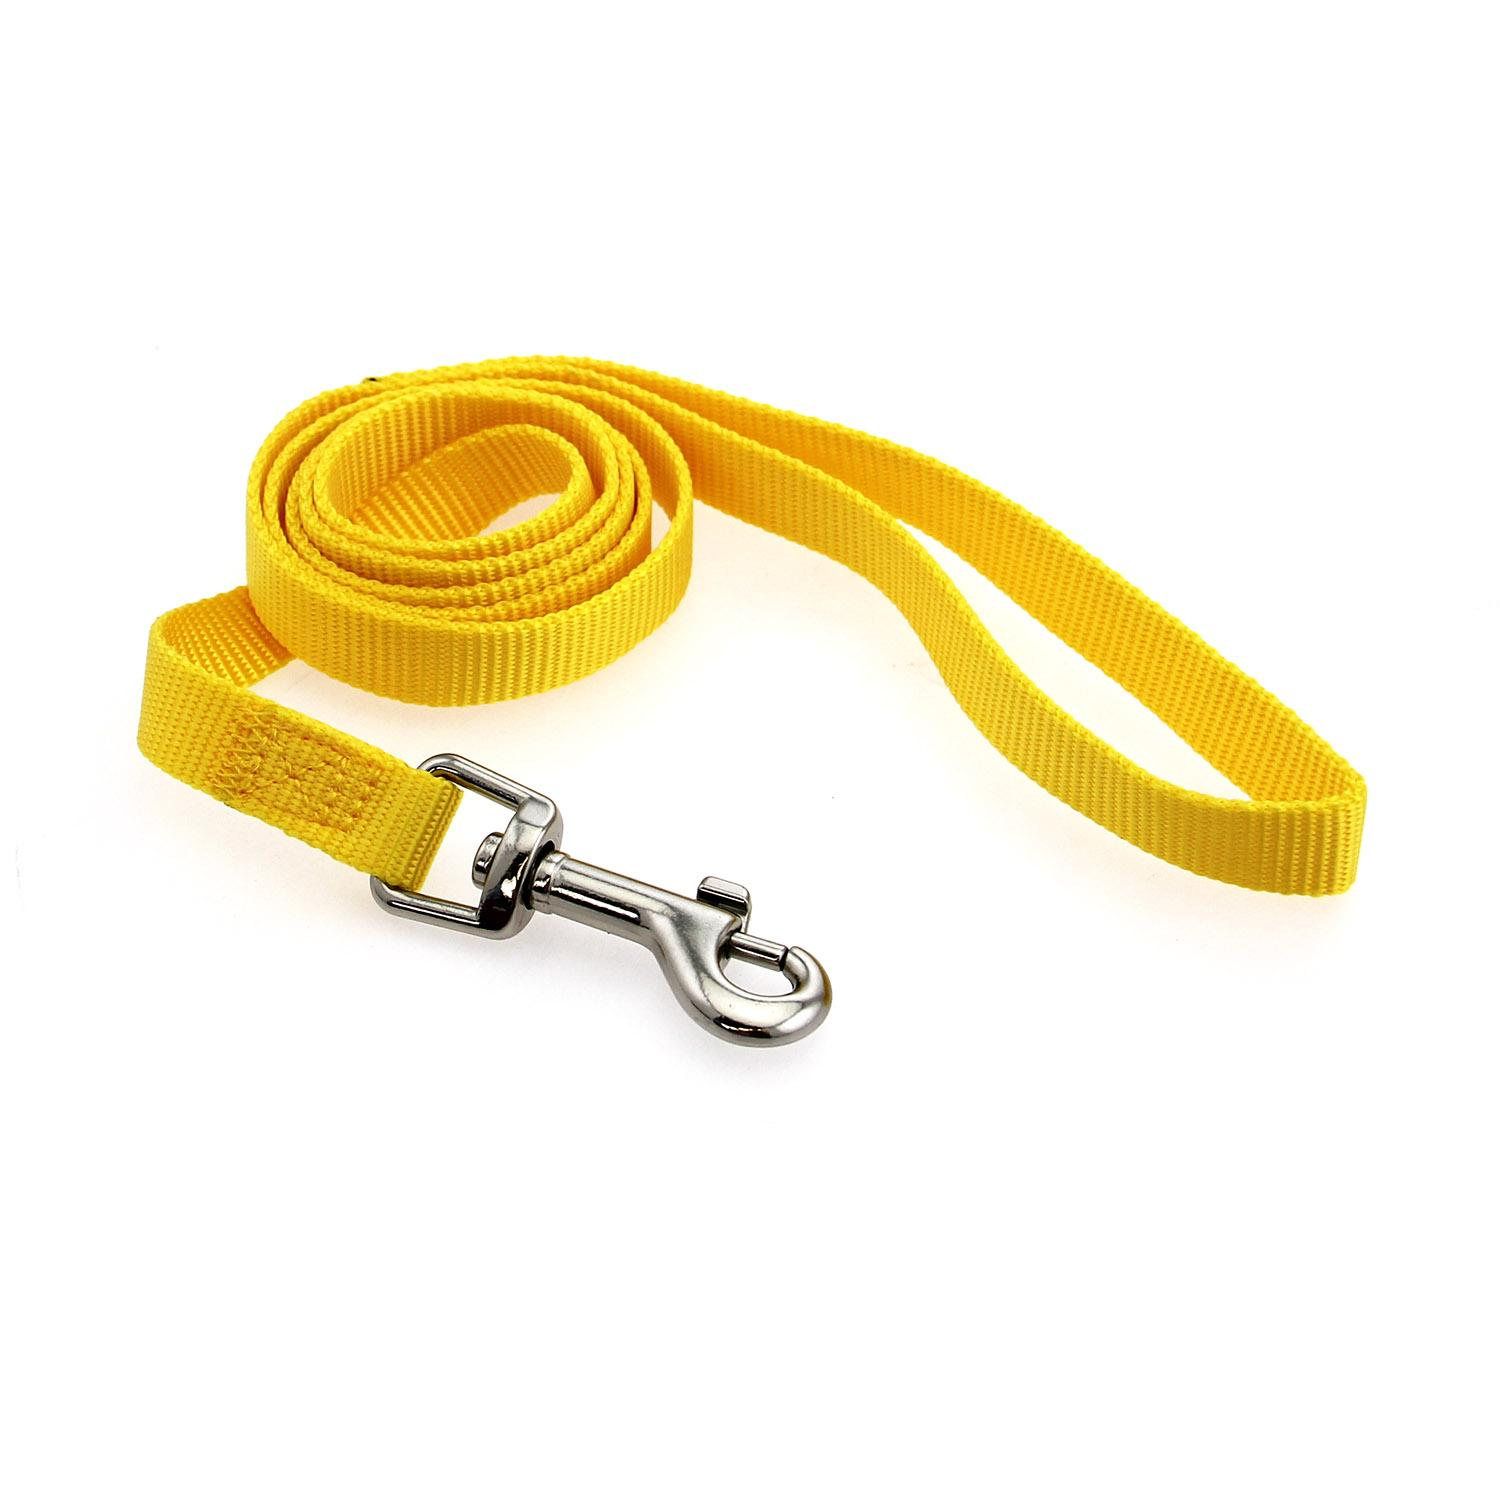 Casual Canine Nylon Dog Leash - Yellow